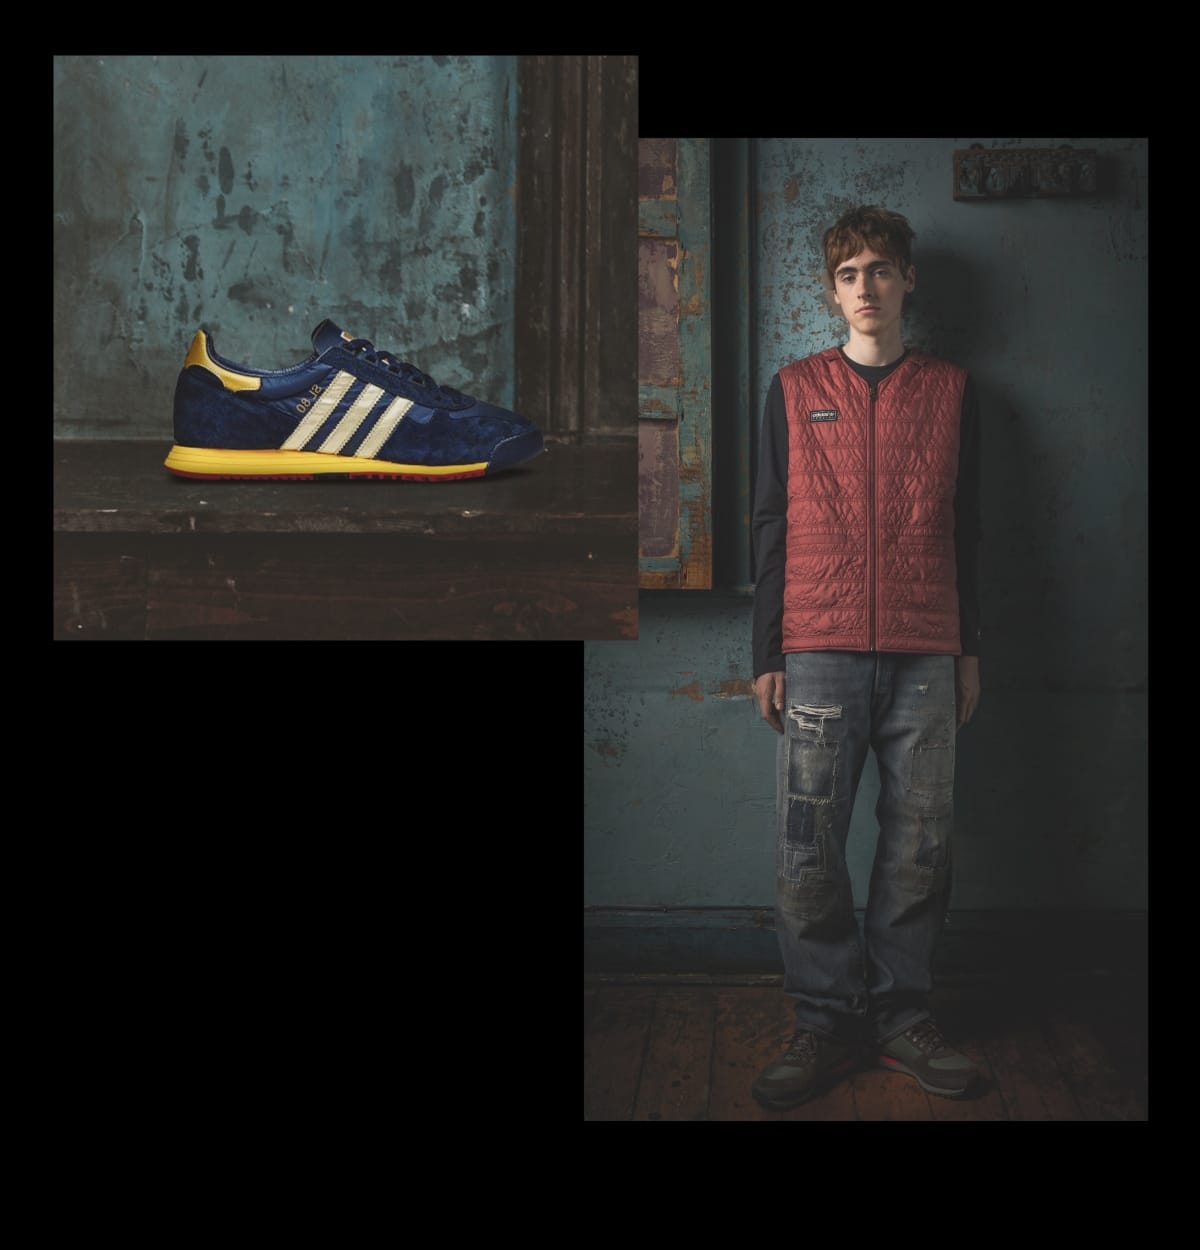 Shop the Space Inspired adidas NMD Sneakers Here